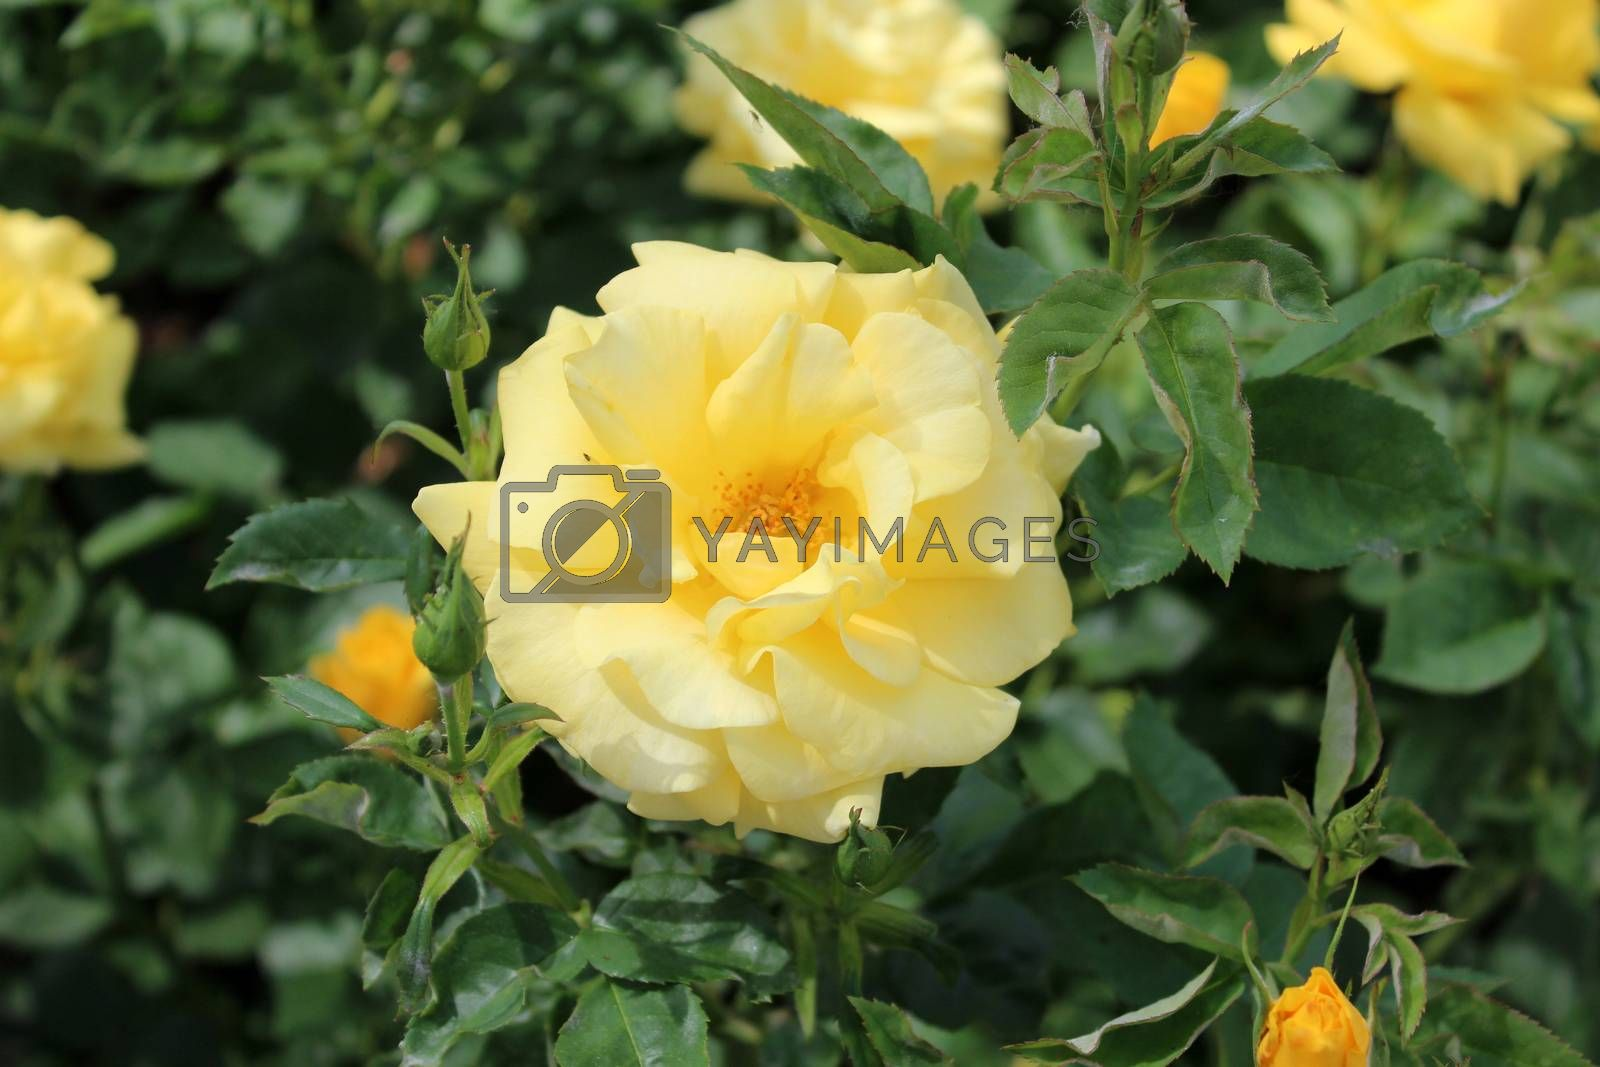 Royalty free image of Yellow rose by aamulya